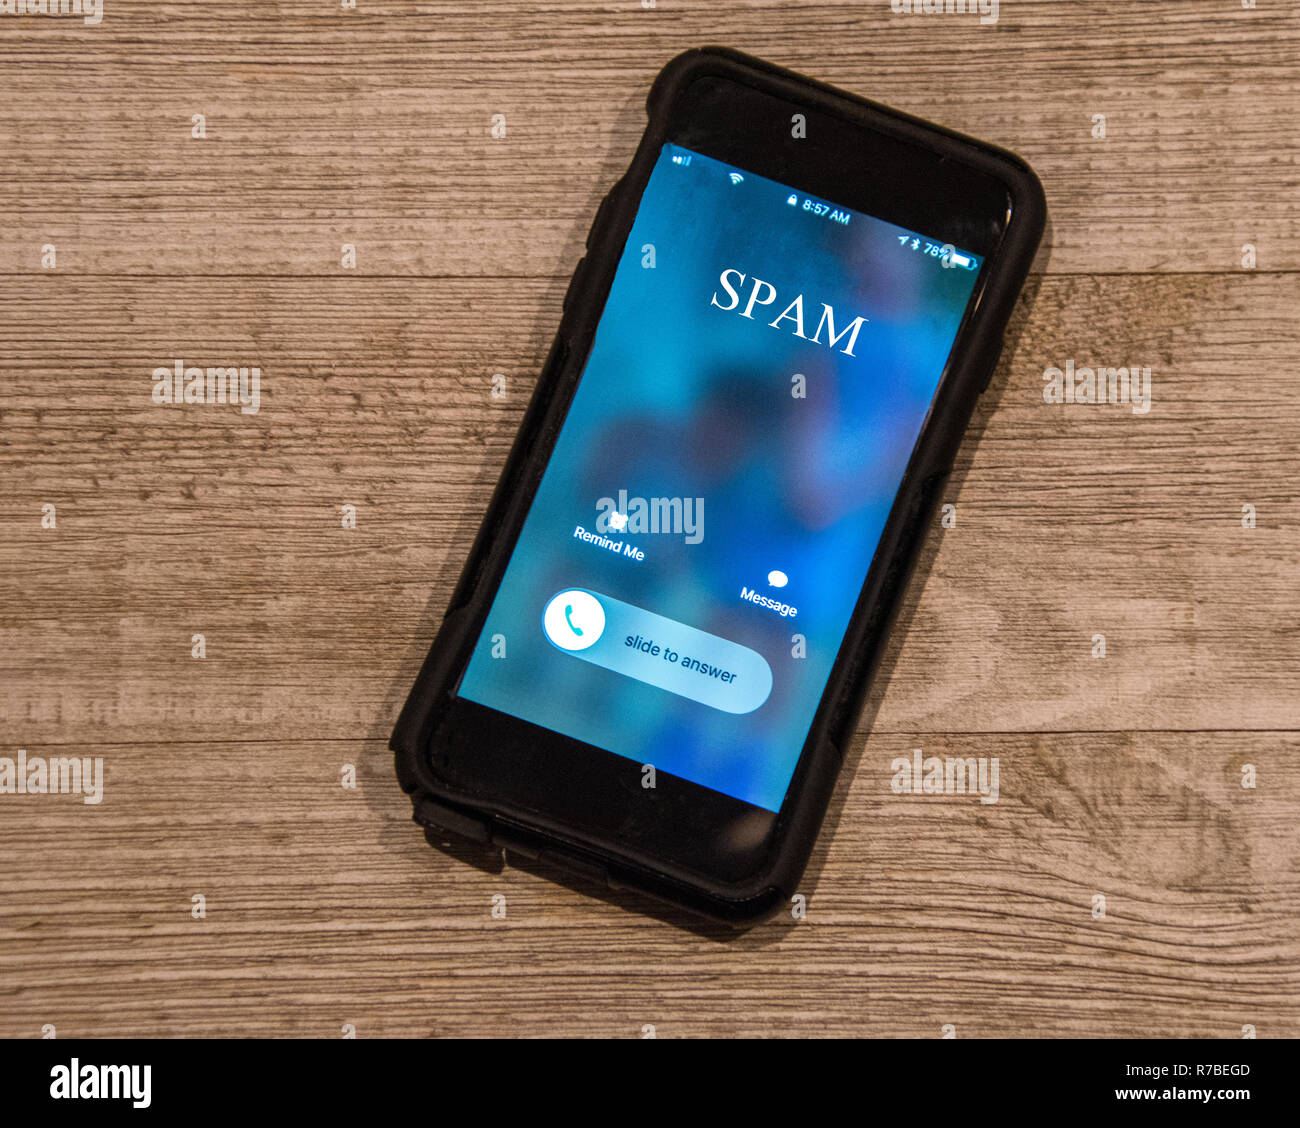 Cell Phone showing call from, Spam - Stock Image